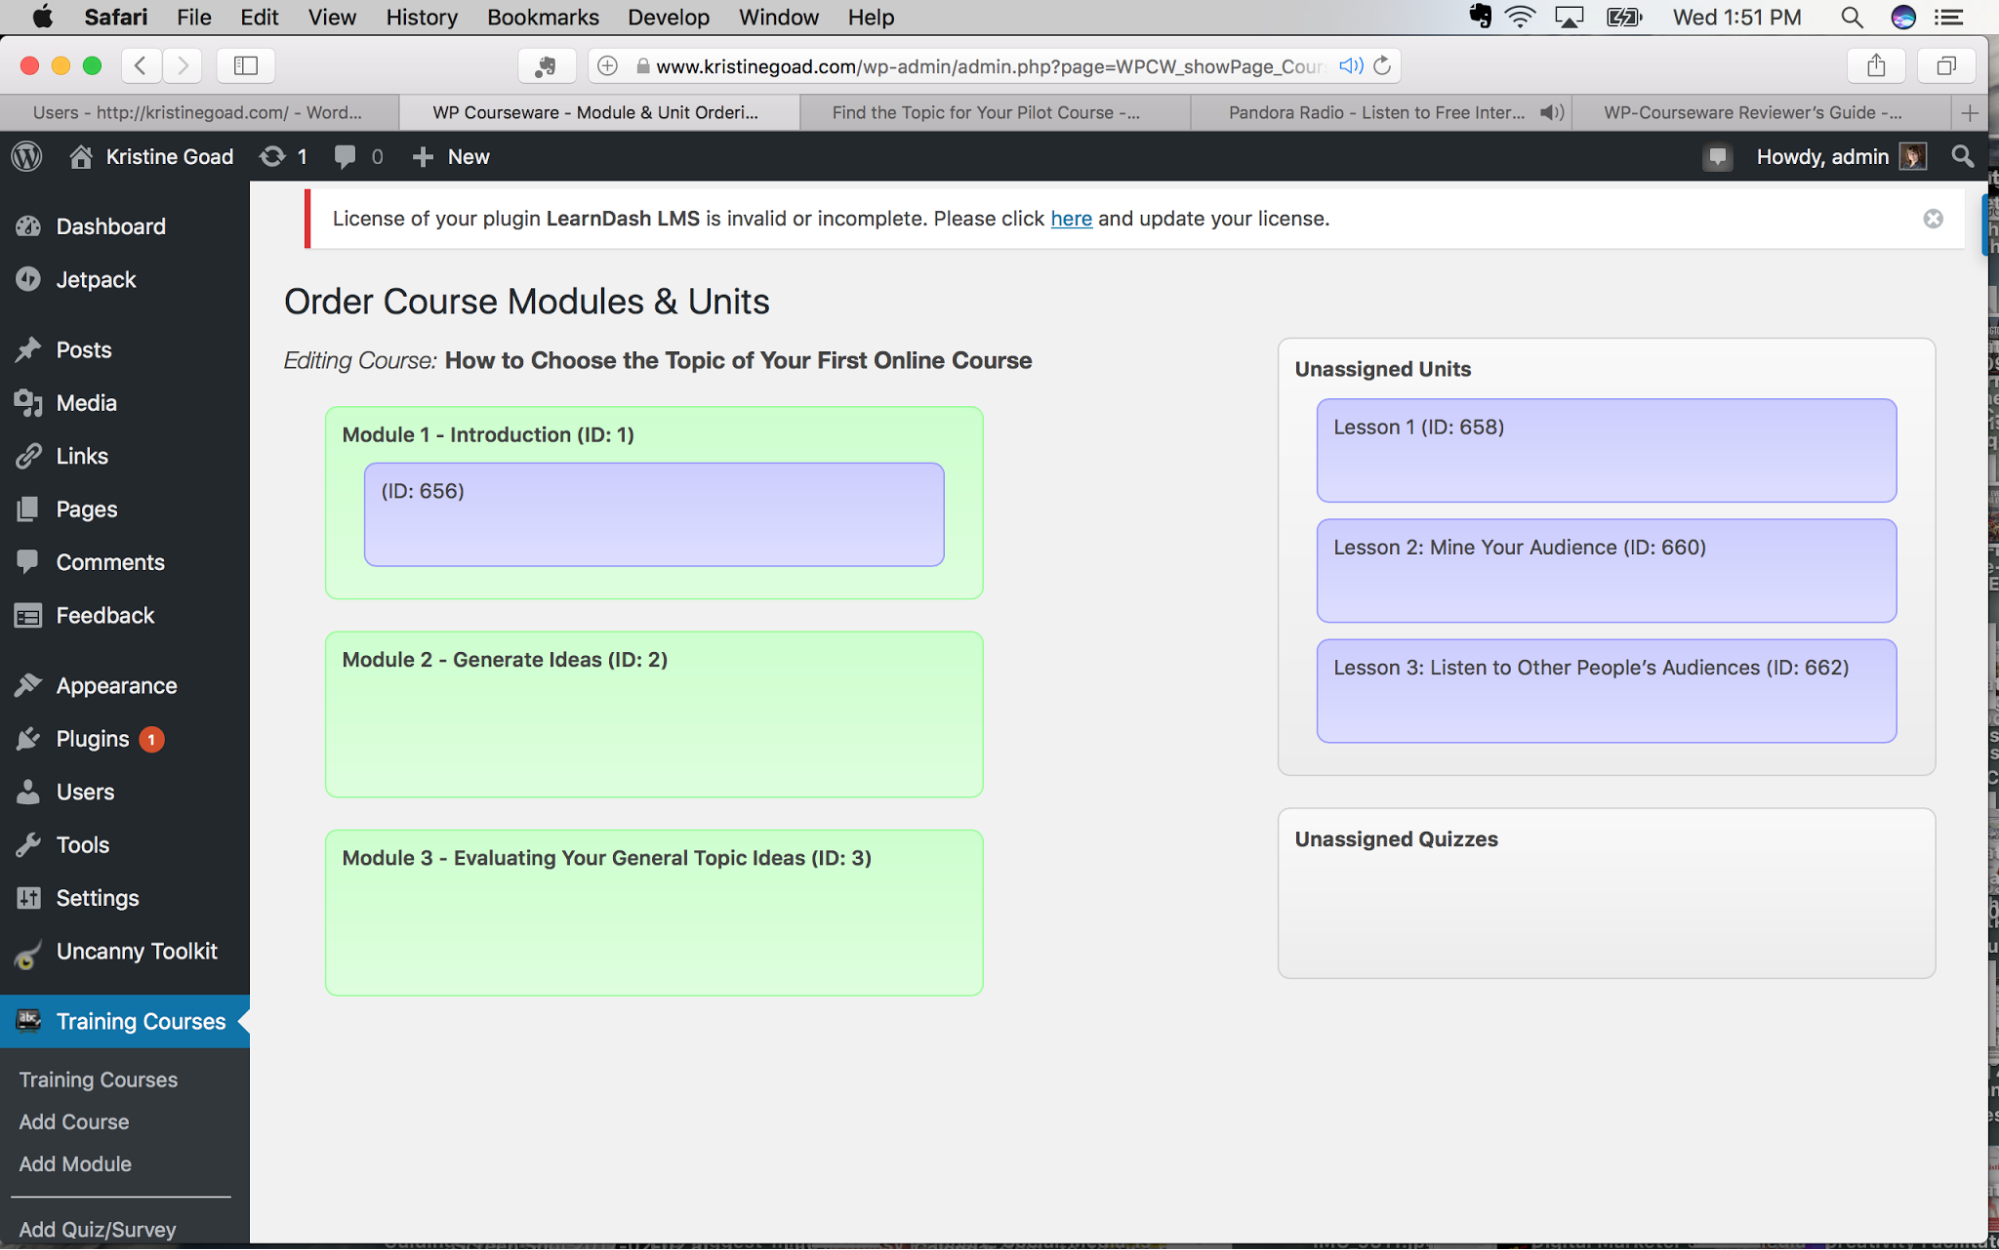 Order Course Modules and Units page